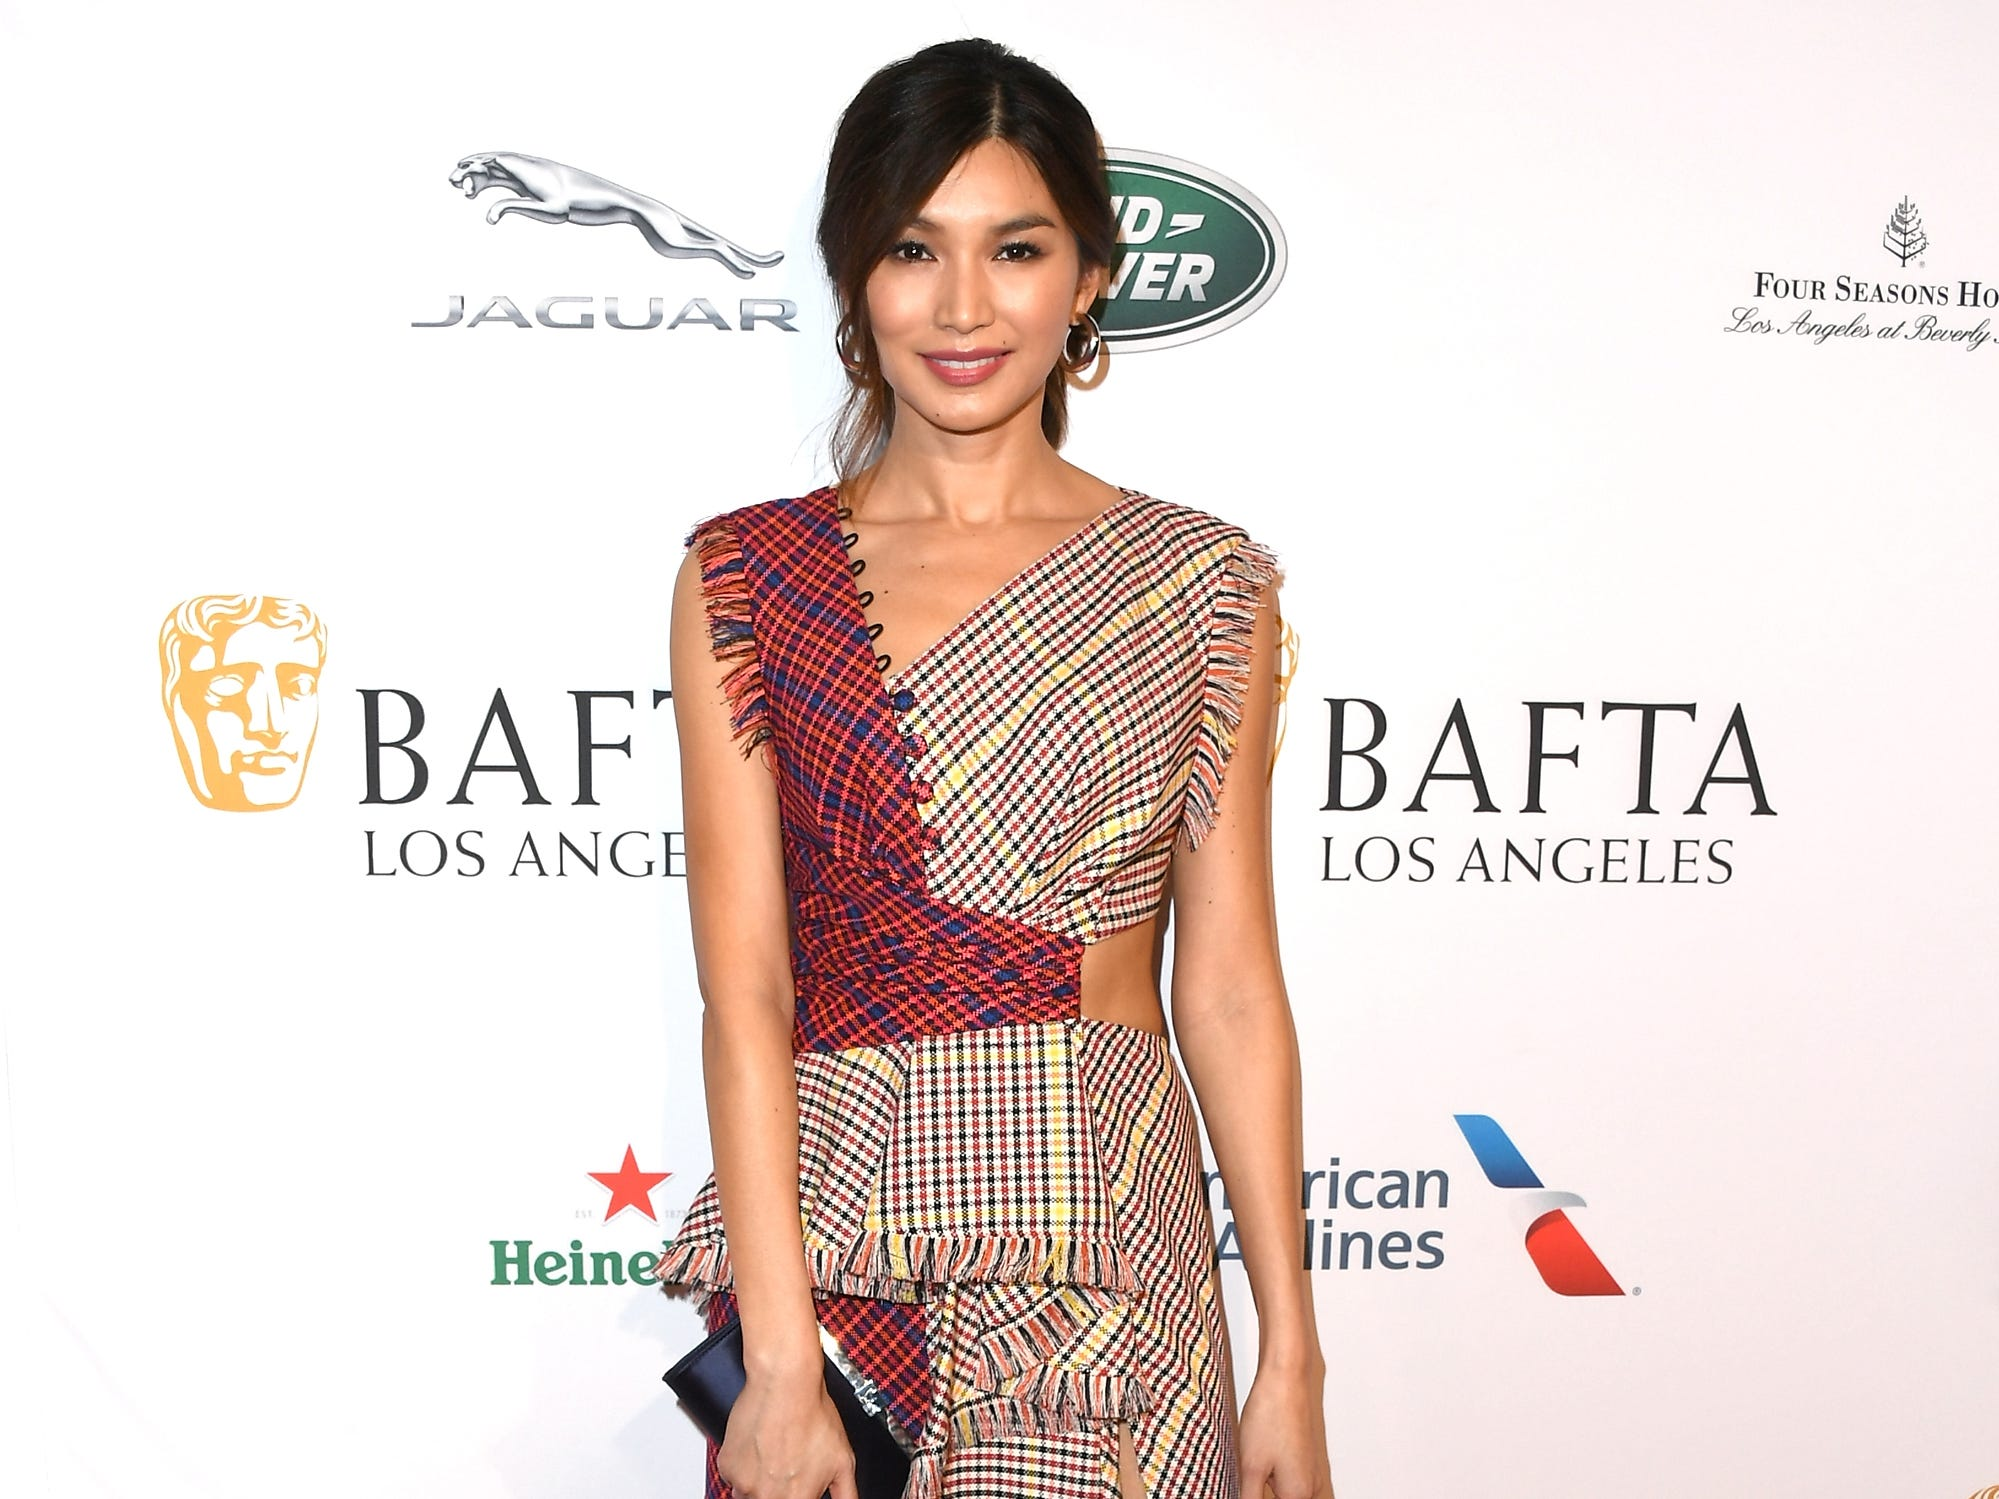 LOS ANGELES, CA - JANUARY 05:  Gemma Chan attends The BAFTA Los Angeles Tea Party at Four Seasons Hotel Los Angeles at Beverly Hills on January 5, 2019 in Los Angeles, California.  (Photo by Jon Kopaloff/Getty Images) ORG XMIT: 775261683 ORIG FILE ID: 1077930460